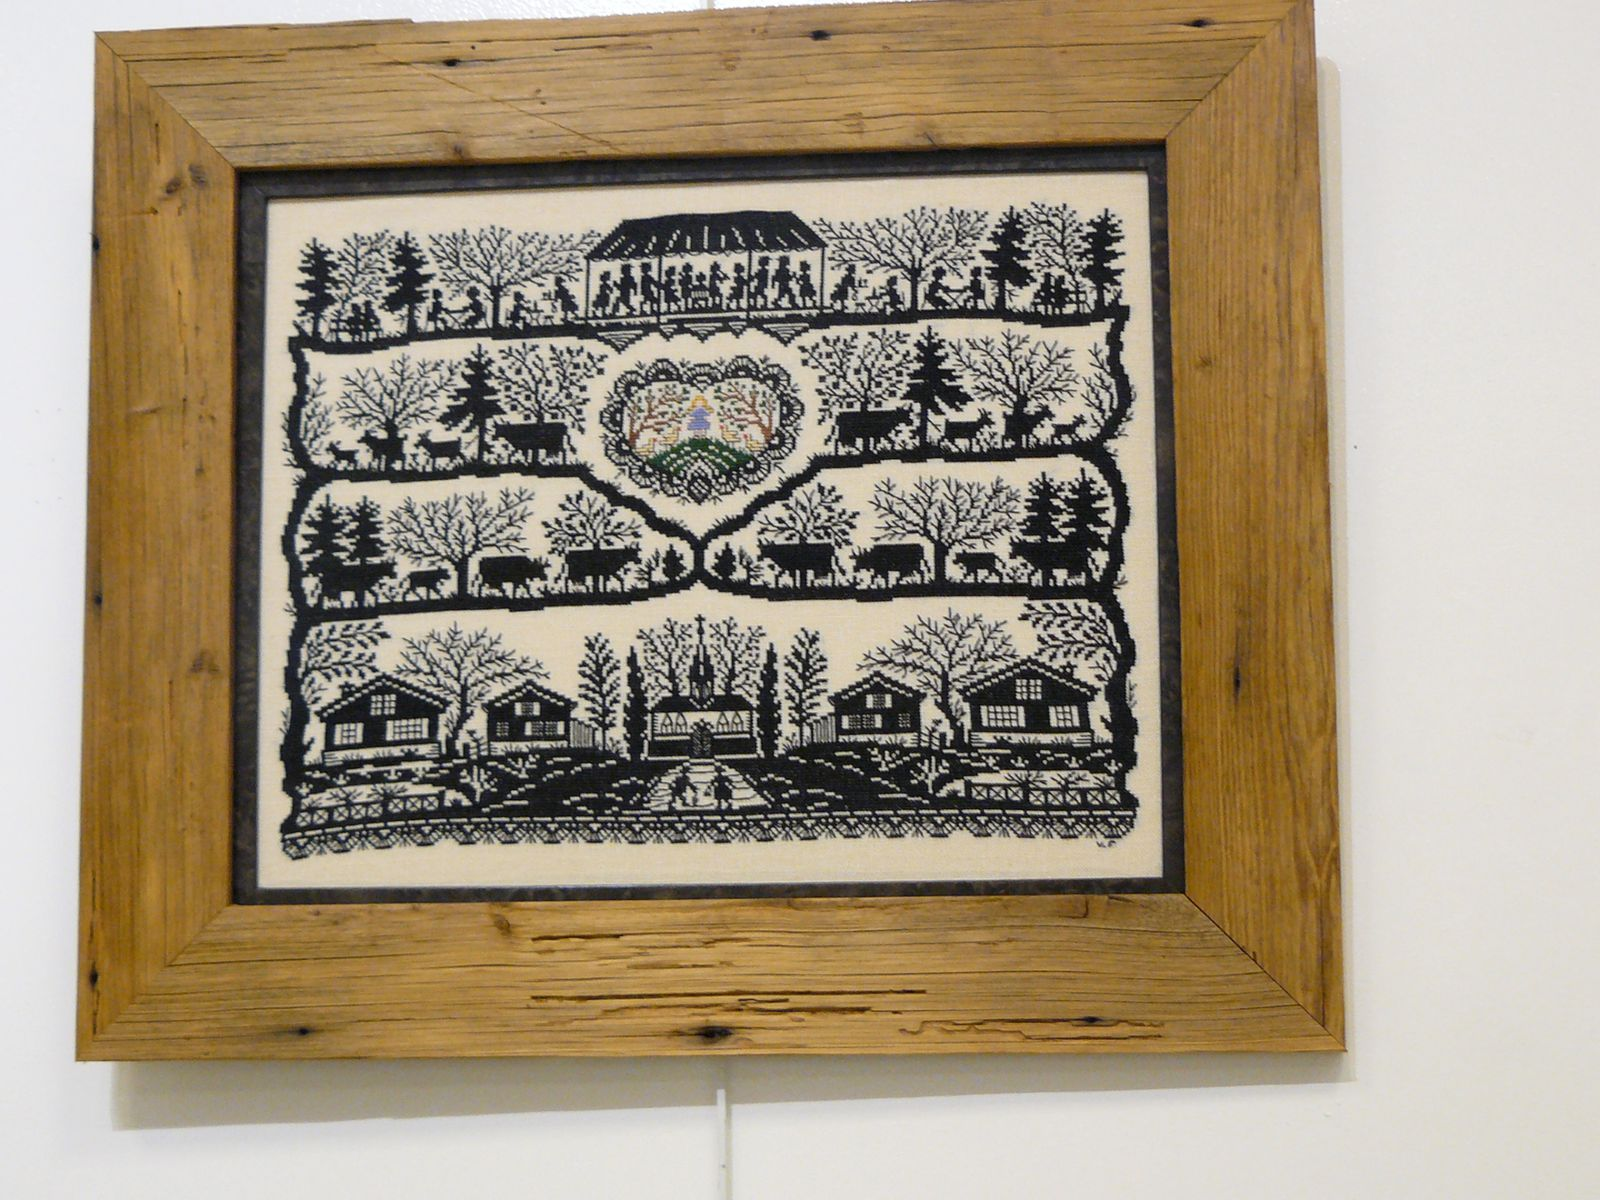 Expo broderie